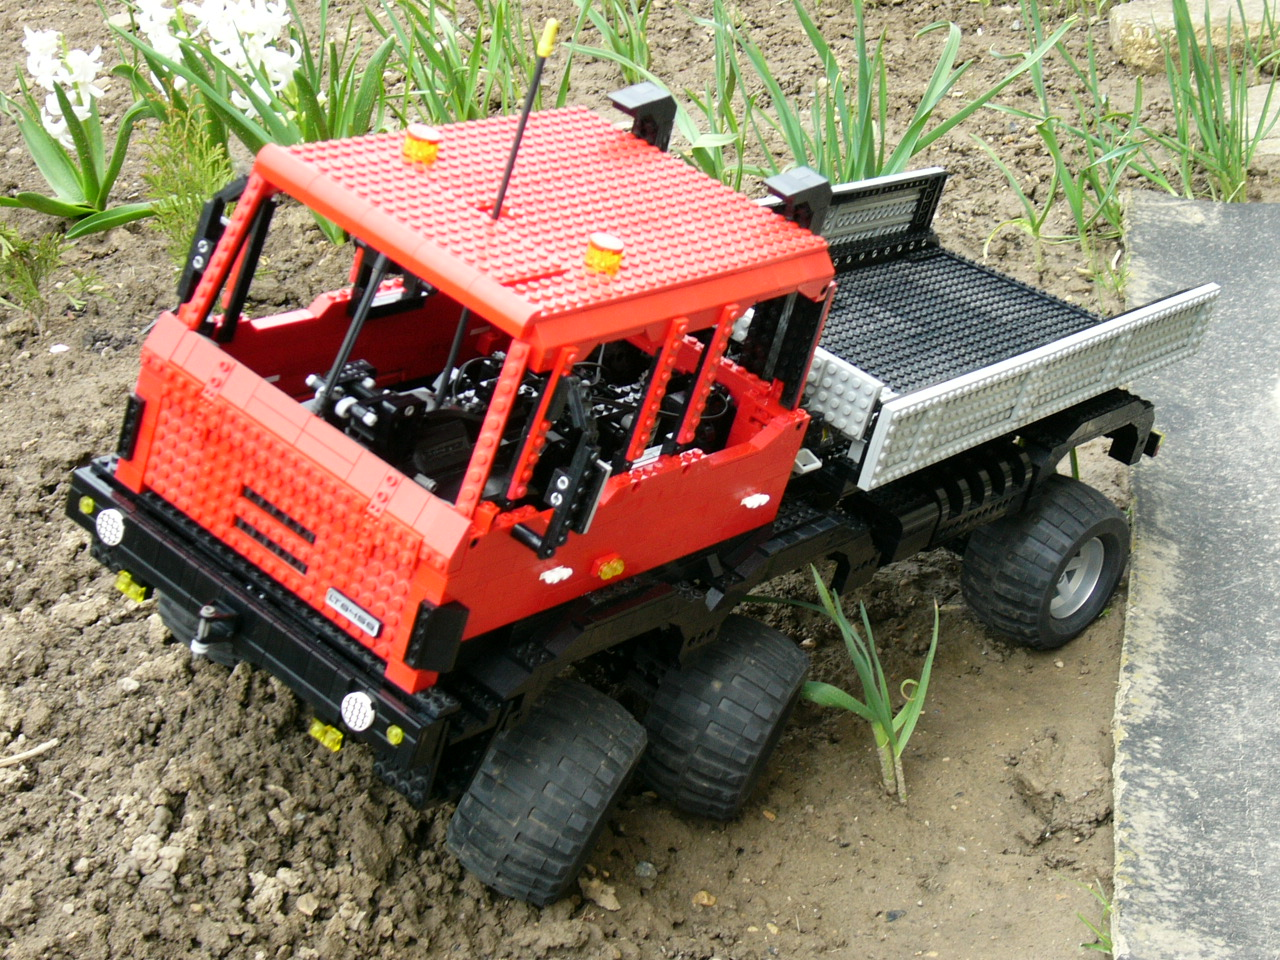 6x6tatrafinished08.jpg